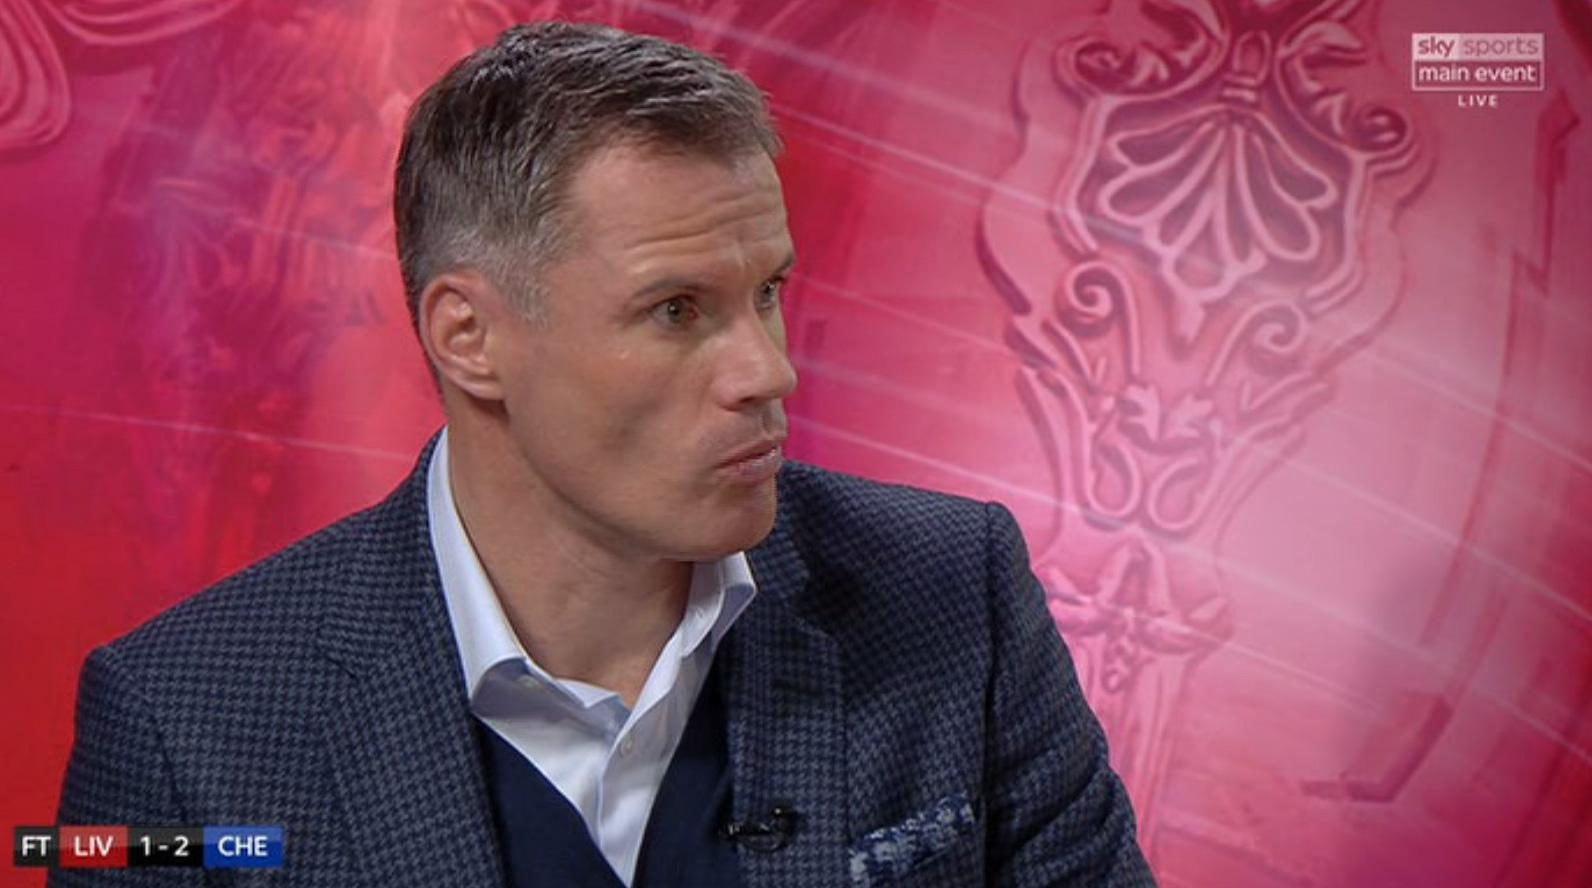 Carragher believes that Pogba plays for himself, and isn't as good as what he thinks he is